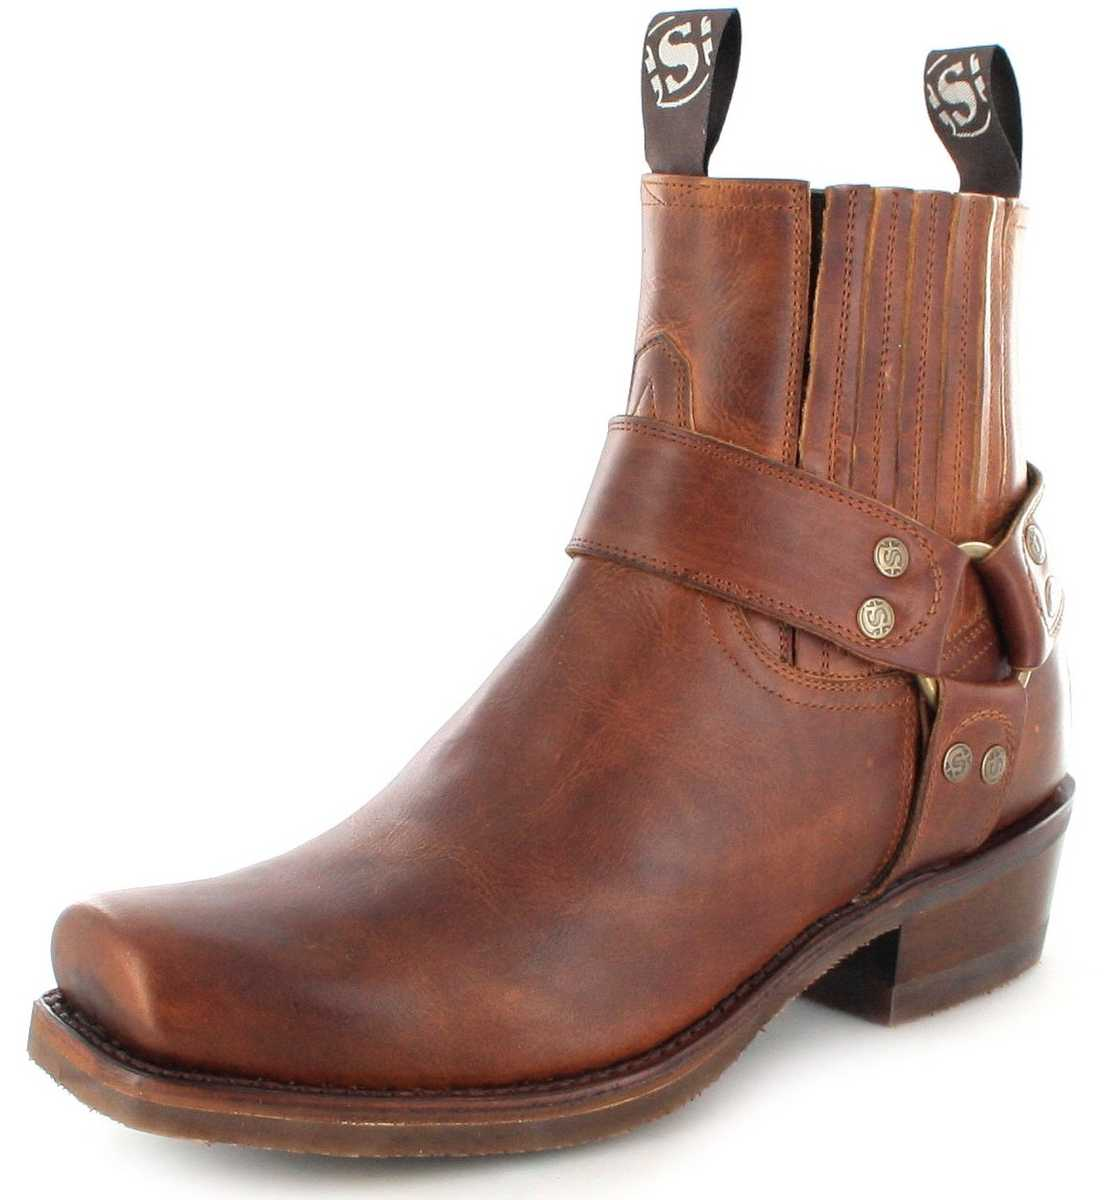 Sendra Boots 8286 Evo Tang biker ankle boot with rubber sole - brown